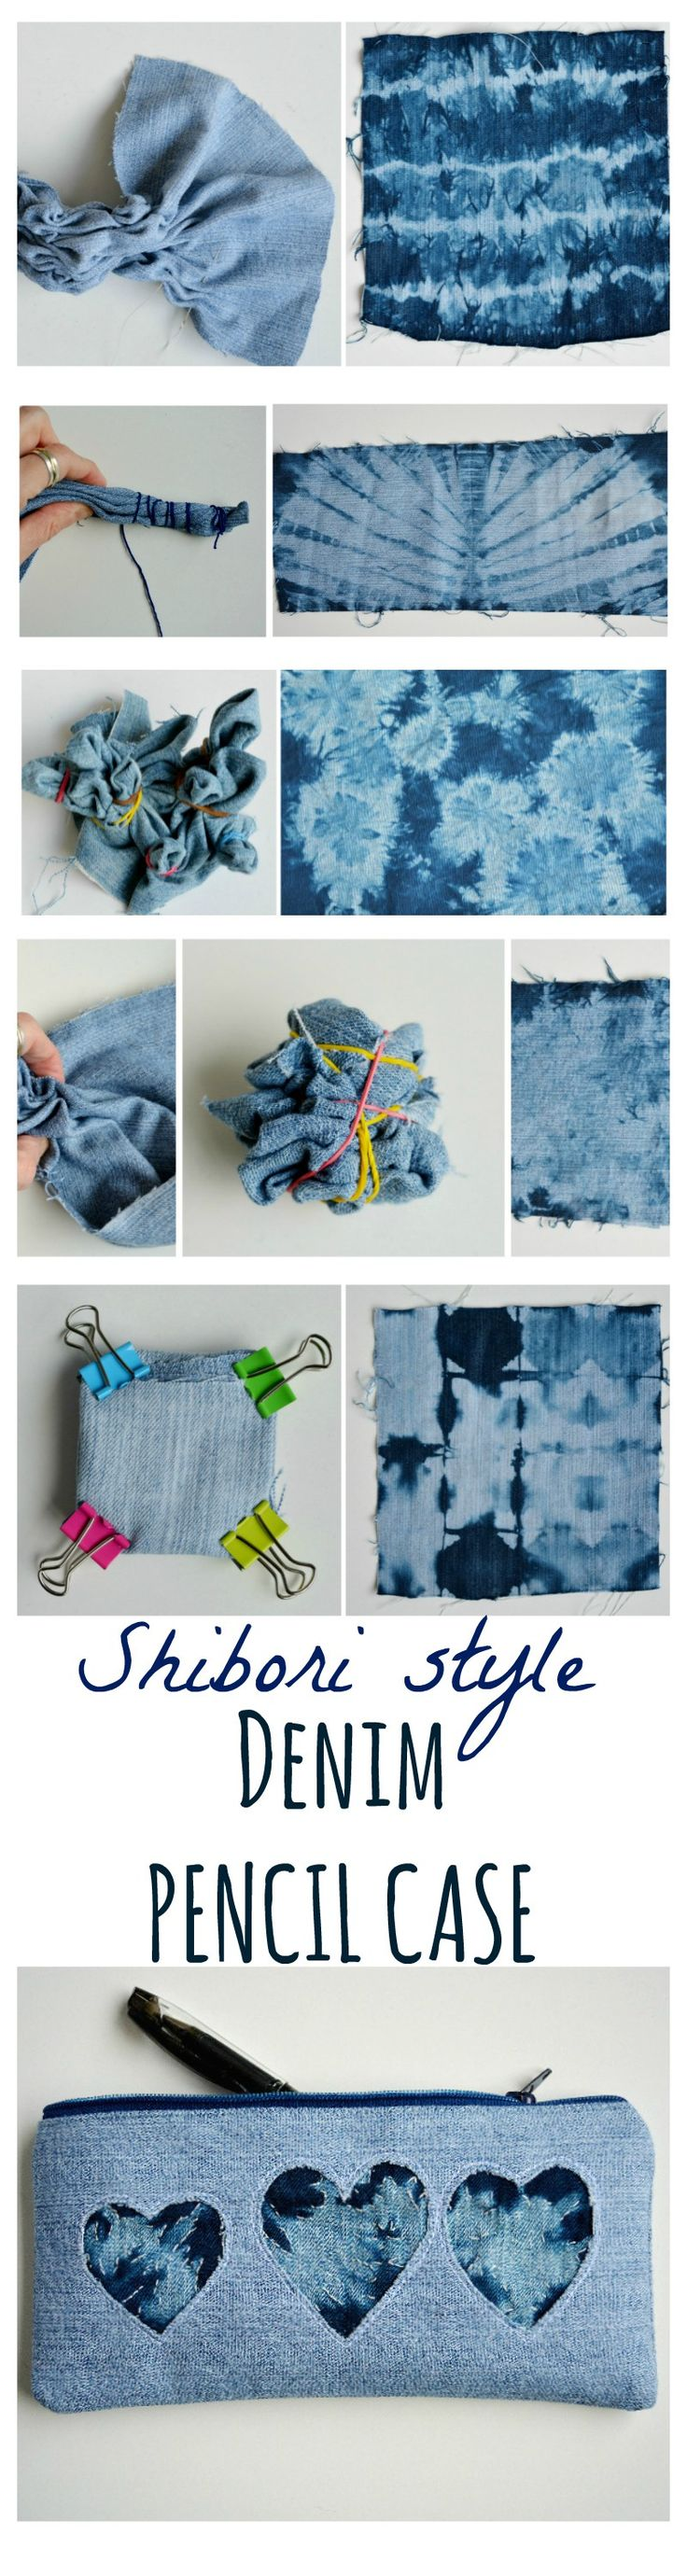 Create a shibori style pencil case with your old denim jeans. Step by step tutorial for the zip denim pencil case. Learn how to tie dye denim.